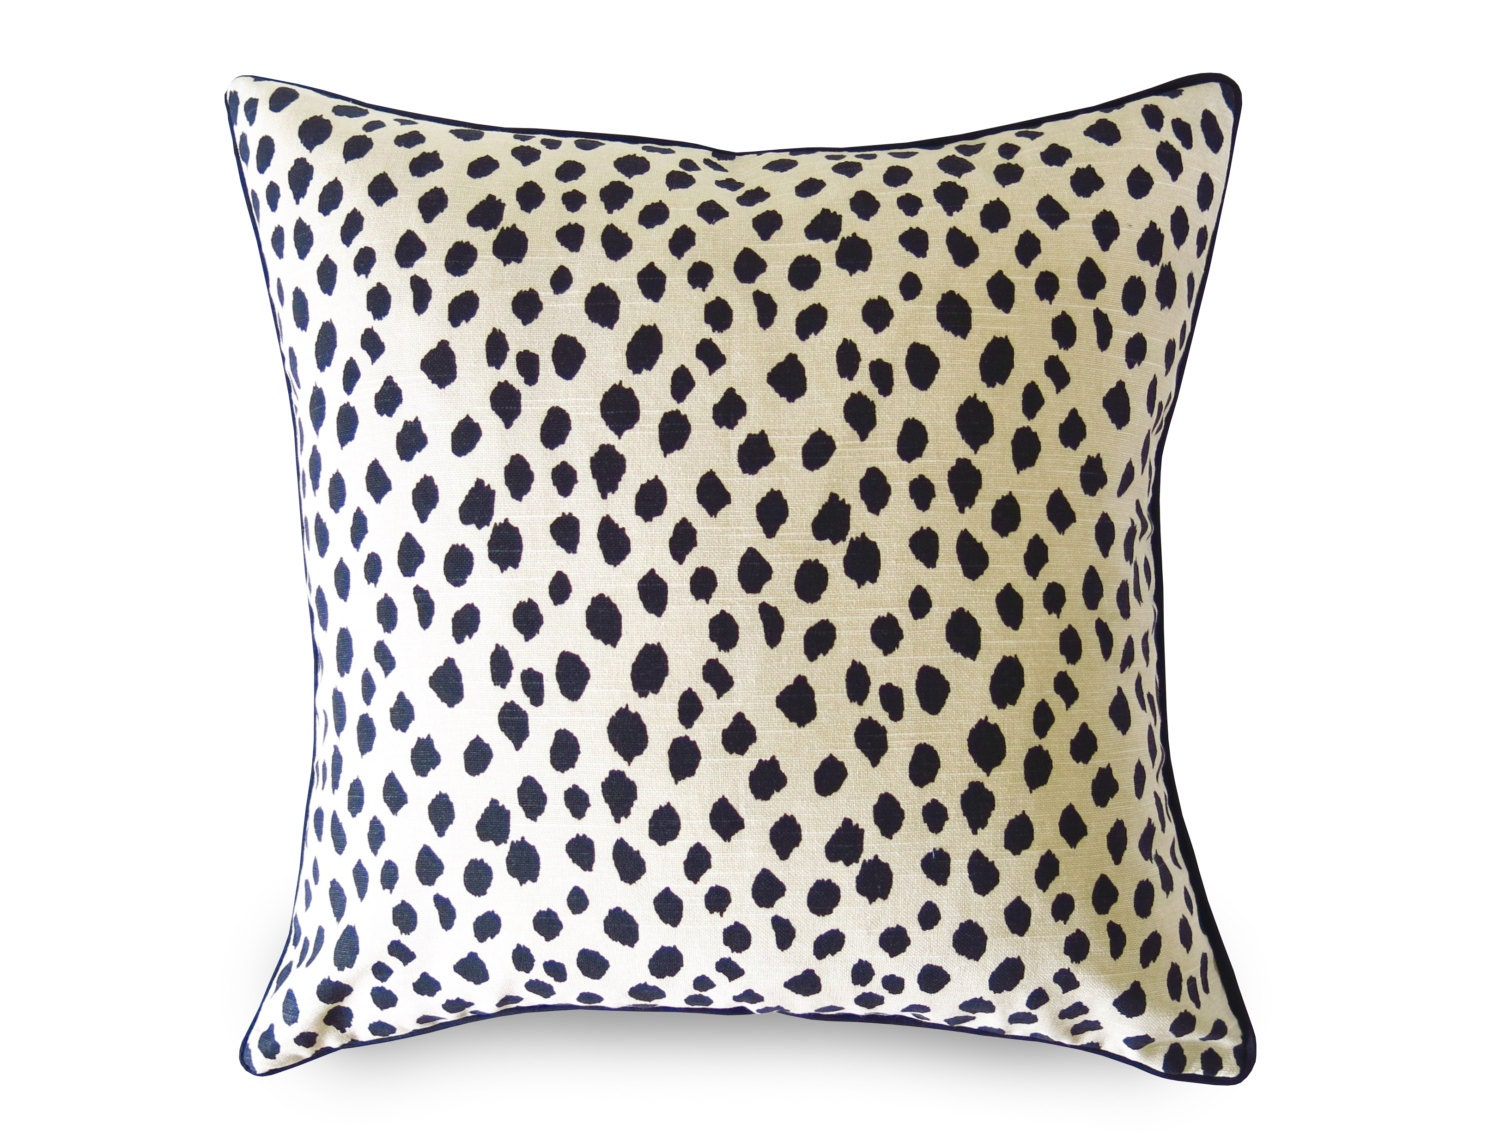 Black And Beige Decorative Pillows : Duma Spots Pillow Cover Black and Beige with Piping